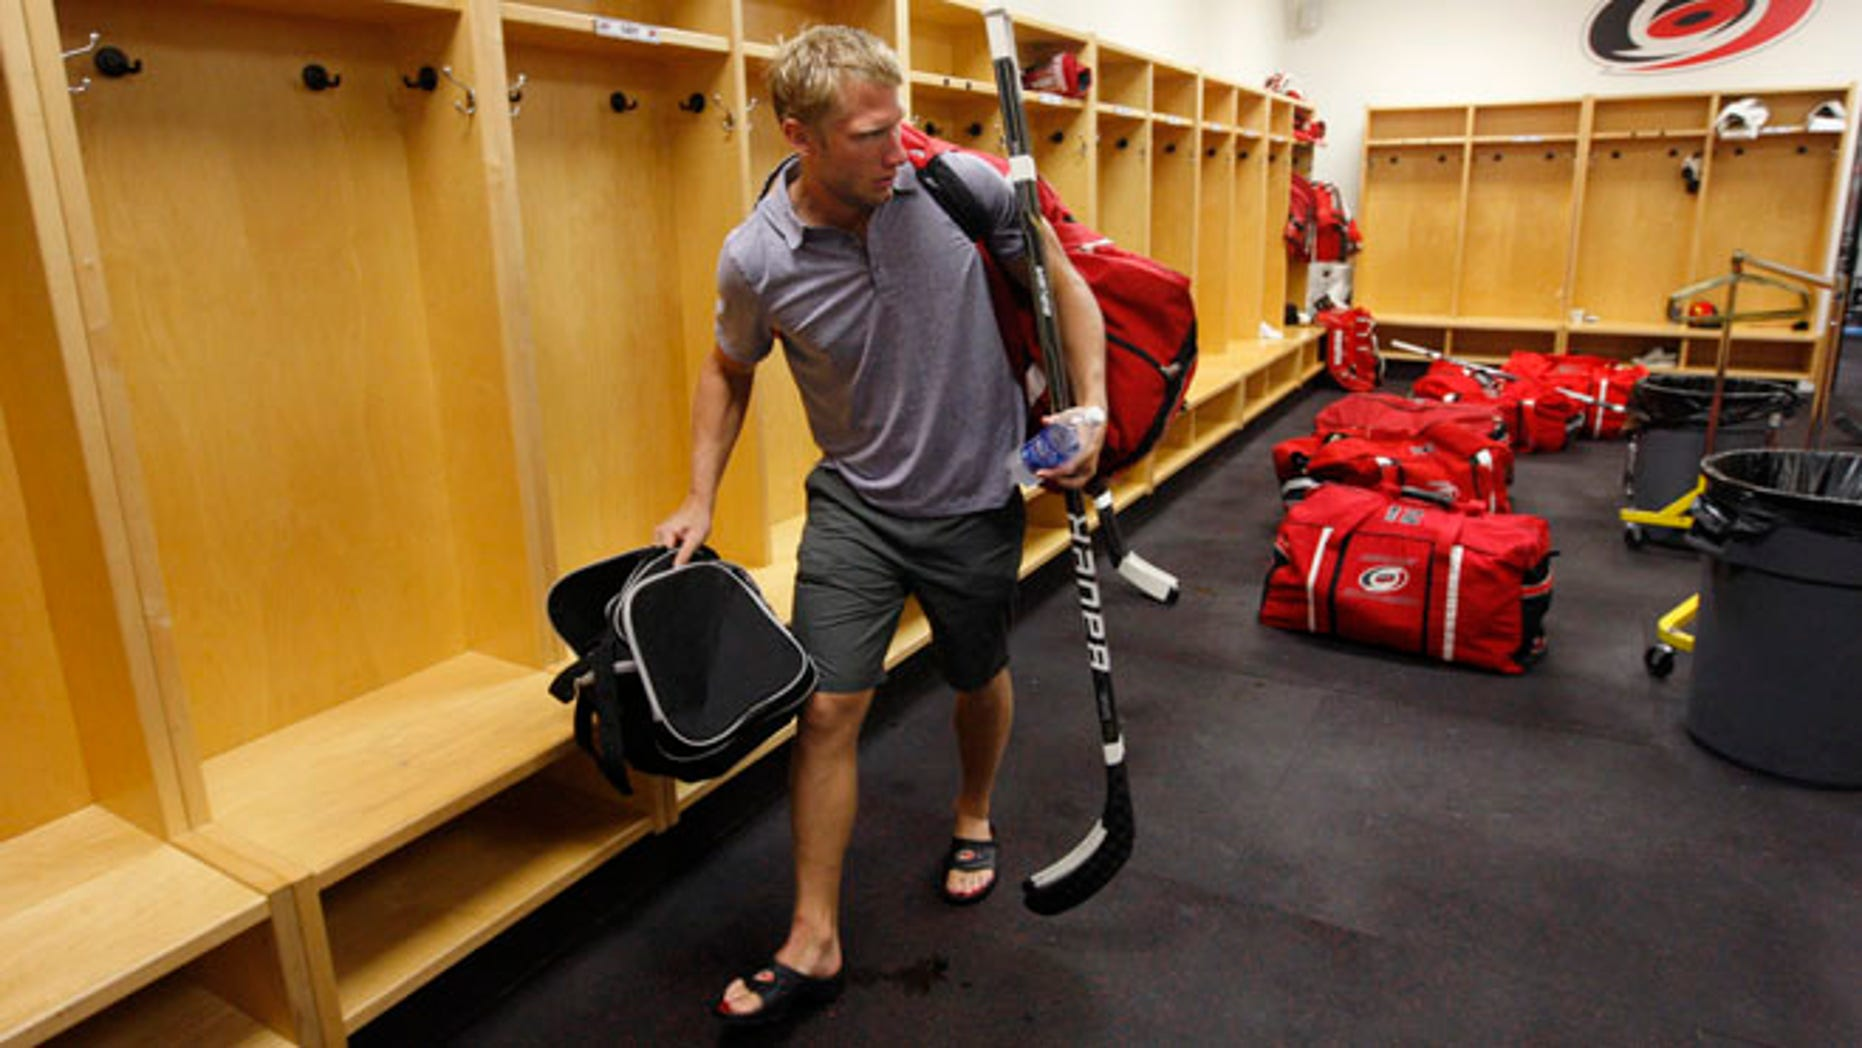 Sept. 14, 2012: Carolina Hurricanes' Jordan Staal leaves the locker room after the NHL hockey team's informal workout at Raleigh Center Ice in Raleigh, N.C.